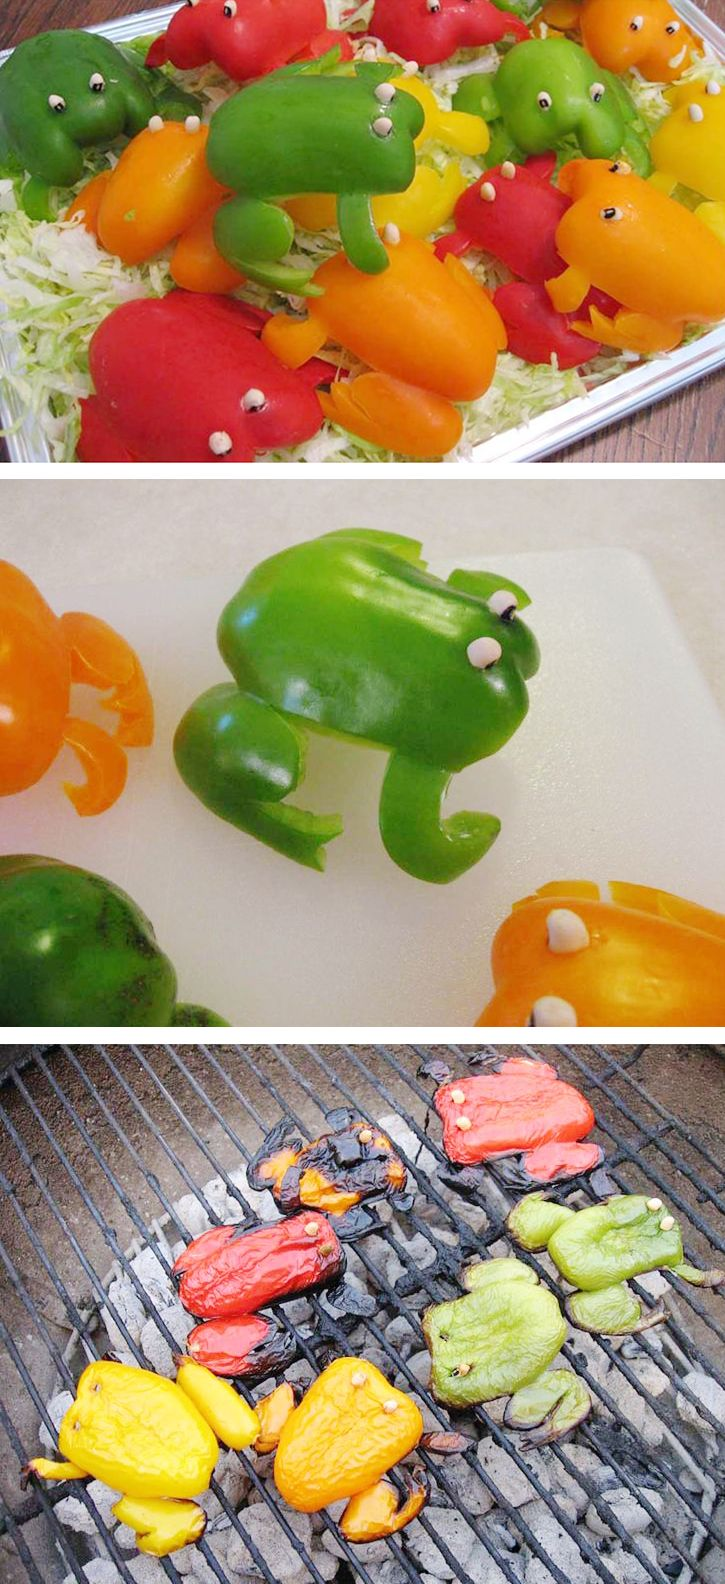 Pepper Frogs - such a fun way to get kids to enjoy these colourful veggies!